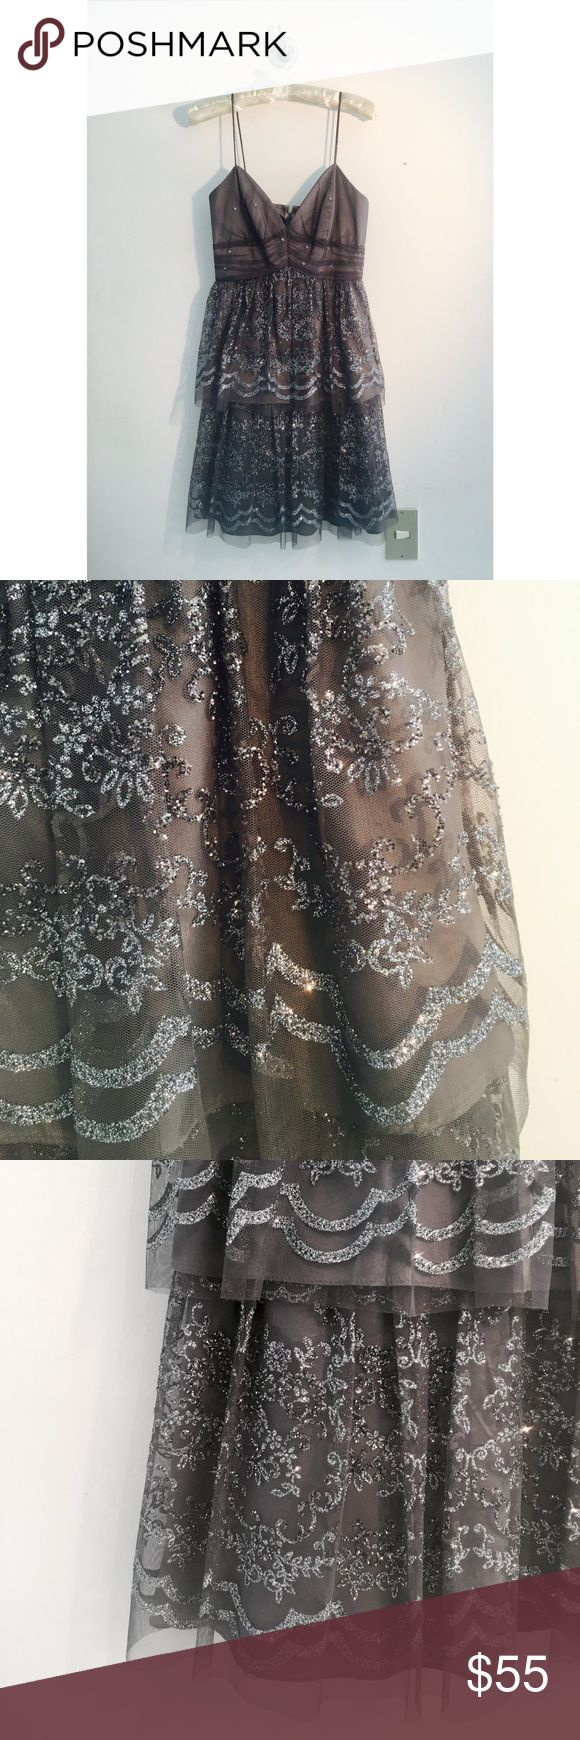 Glitter Mini Gray Dress A gorgeous, glittery mini luxe dress in a beautiful gray color. Tiered tulle skirt with silver sparkle pattern. Perfect for a formal event or a night out. Fits like a 0. Zum Zum by Niki Livas Dresses Mini